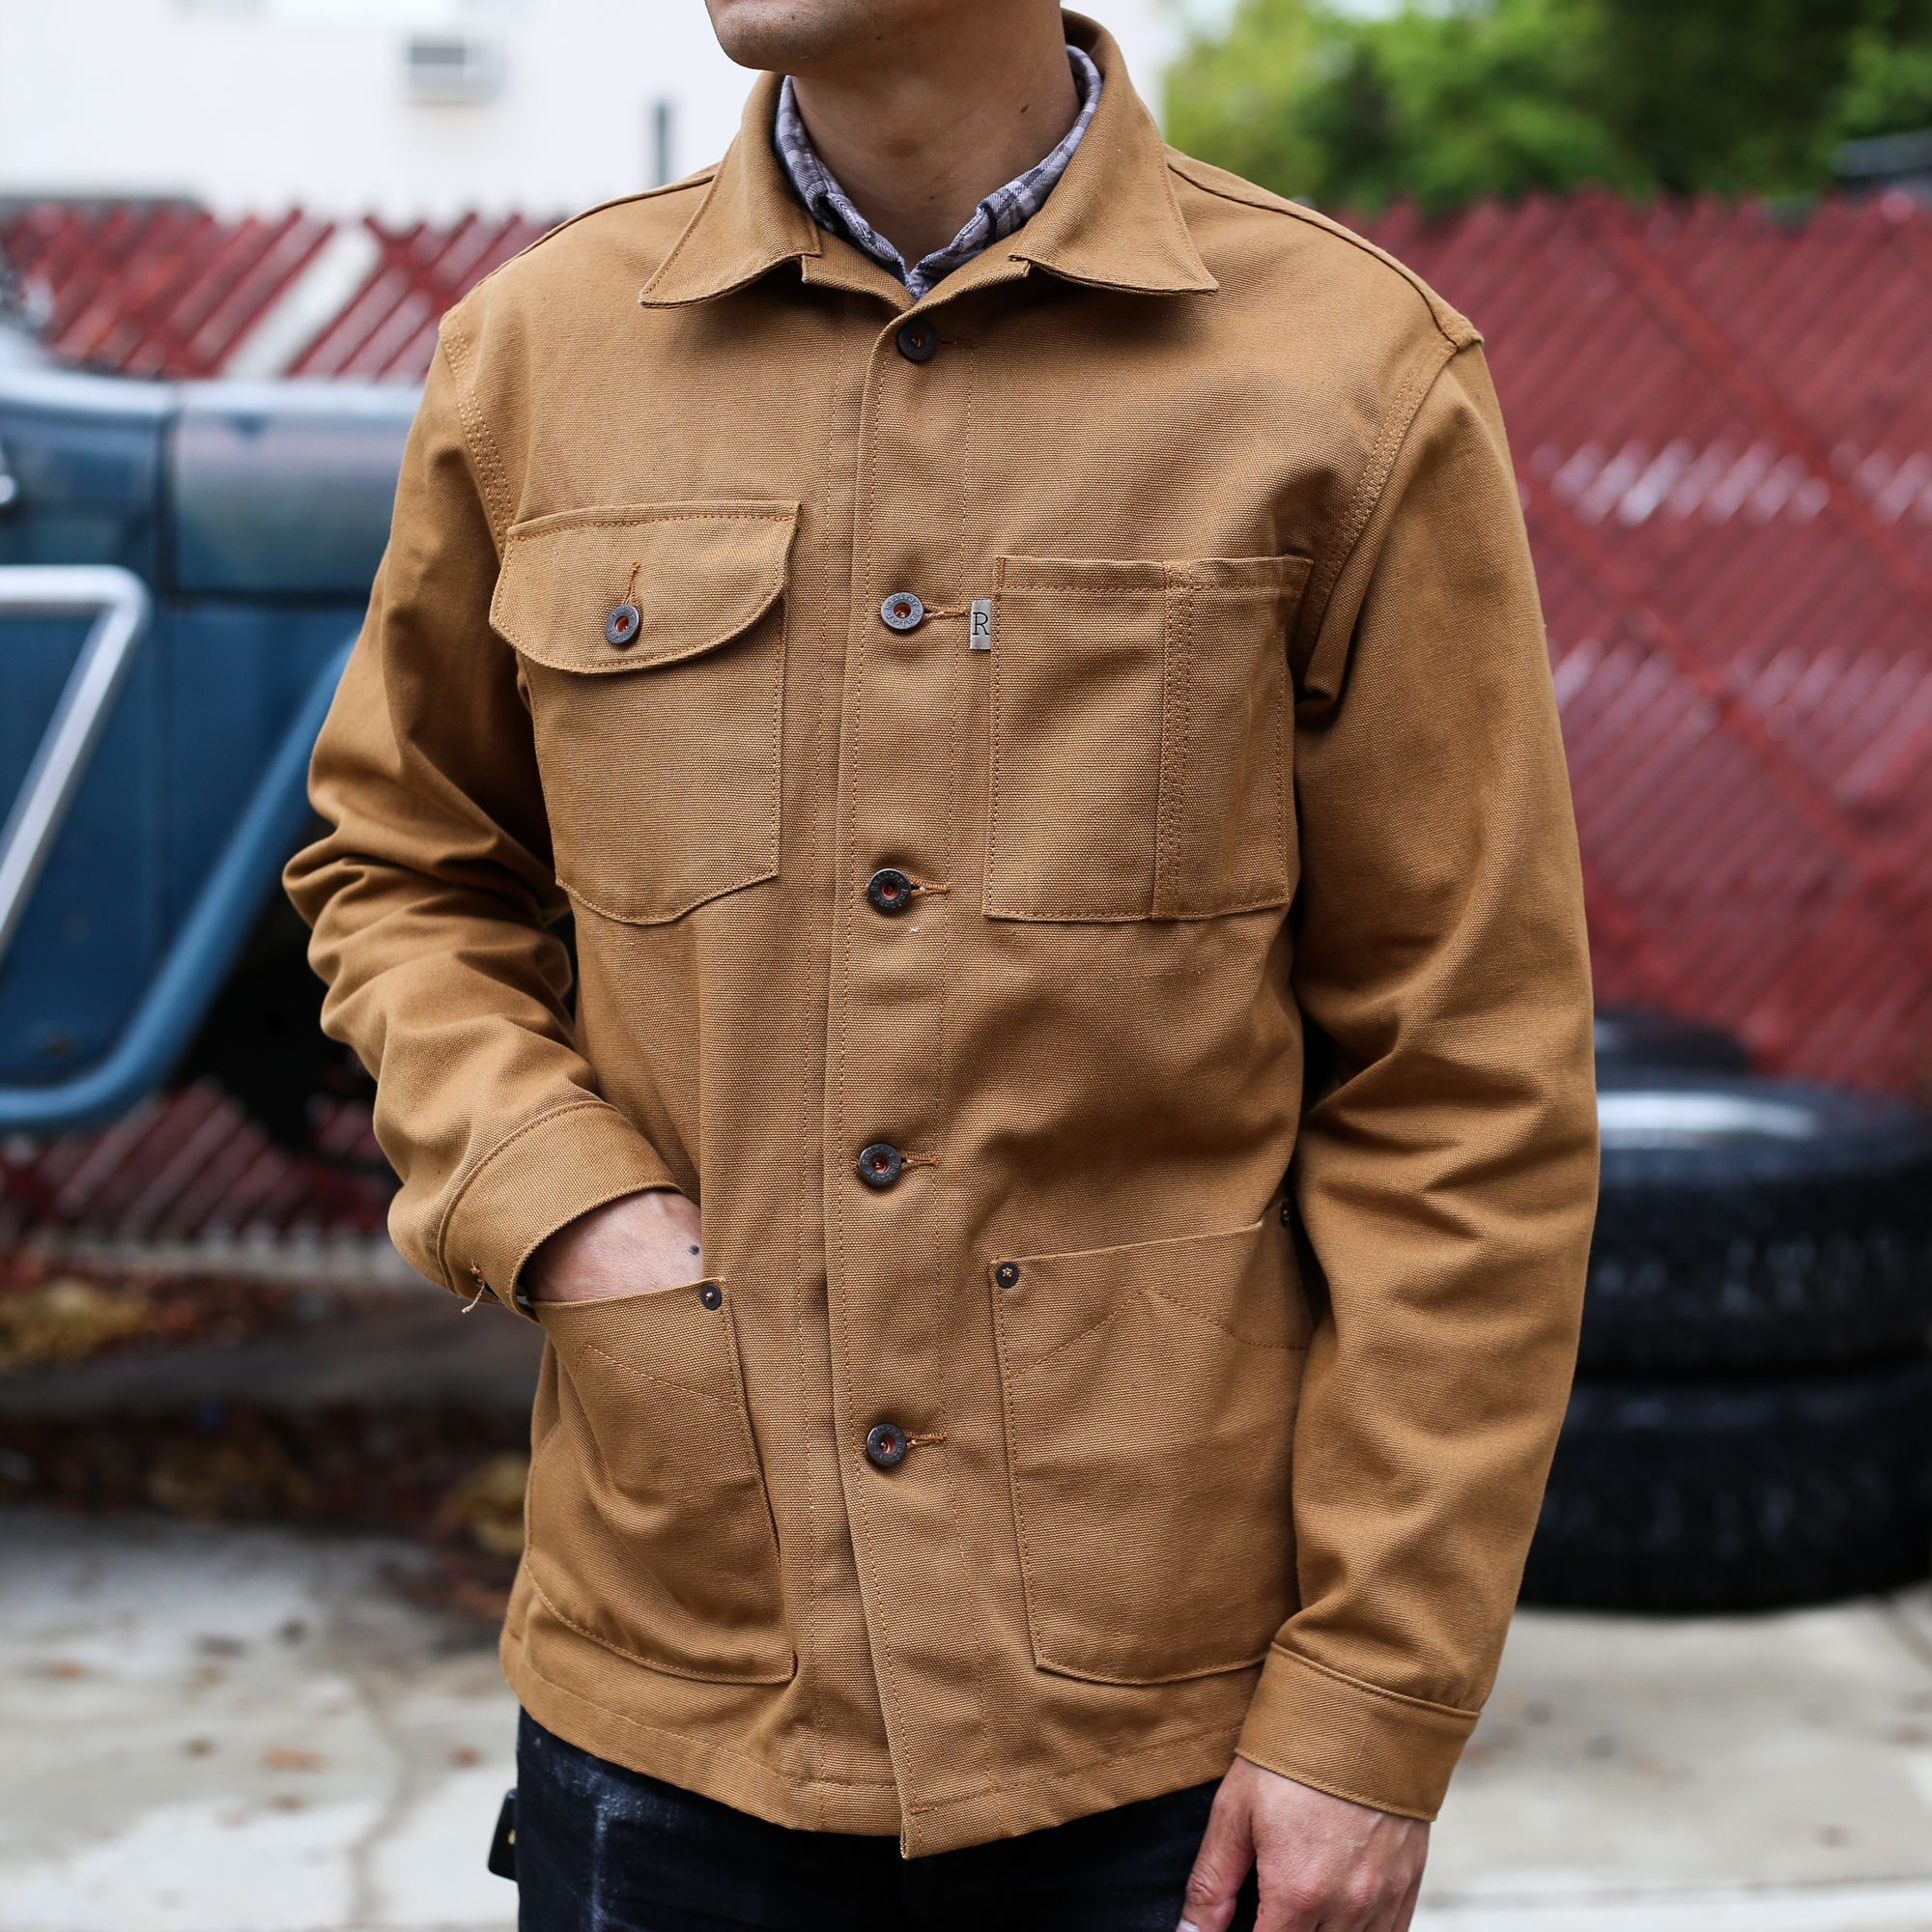 1d20c09544d The Railcar Canvas Chore Coat is the ultimate Made-in-USA jacket. These